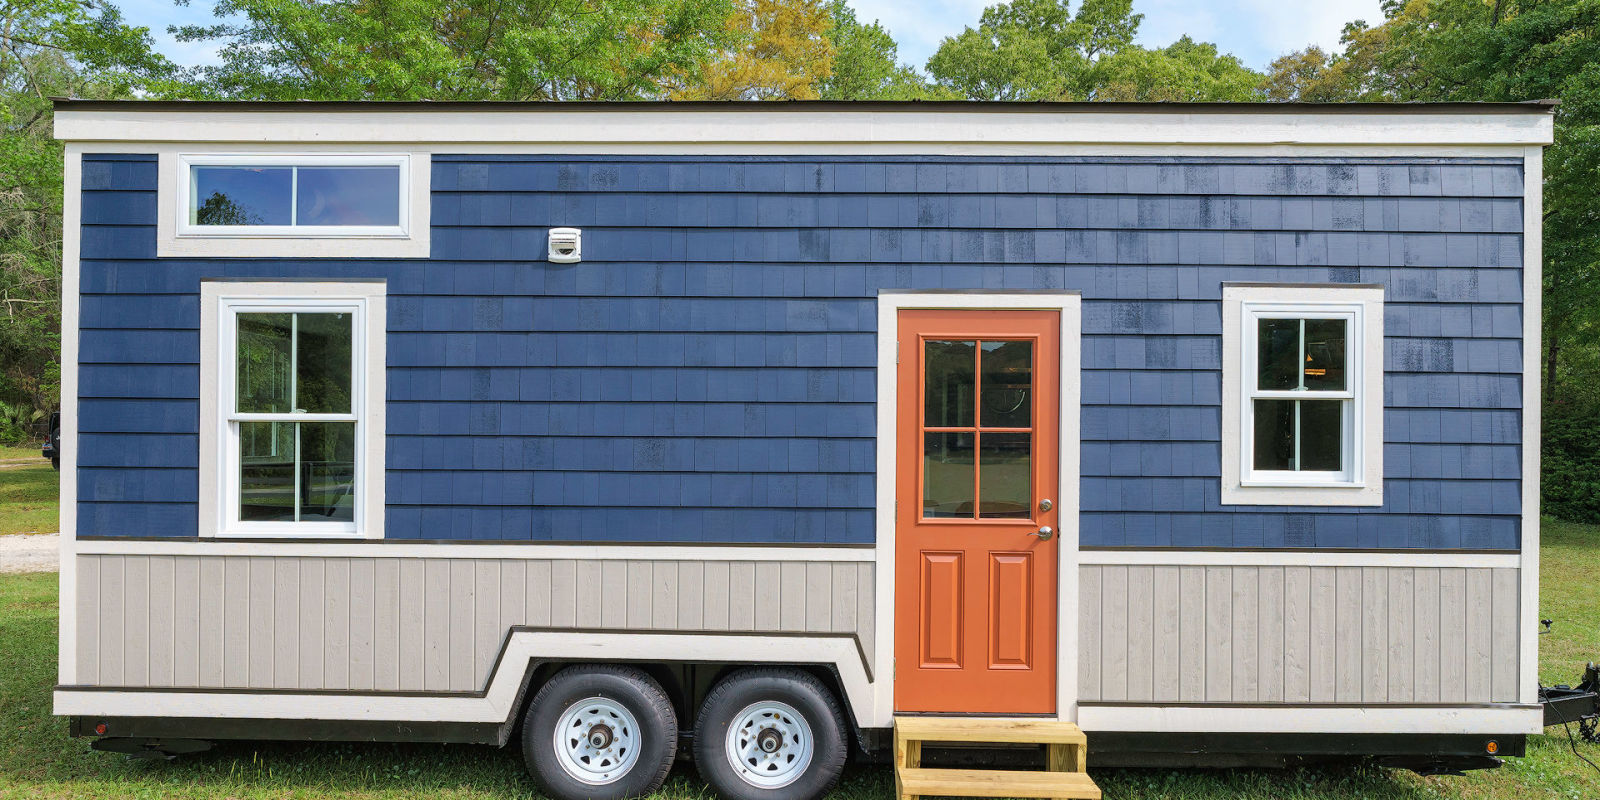 driftwood homes usa tiny house small house paint color ideas. Black Bedroom Furniture Sets. Home Design Ideas